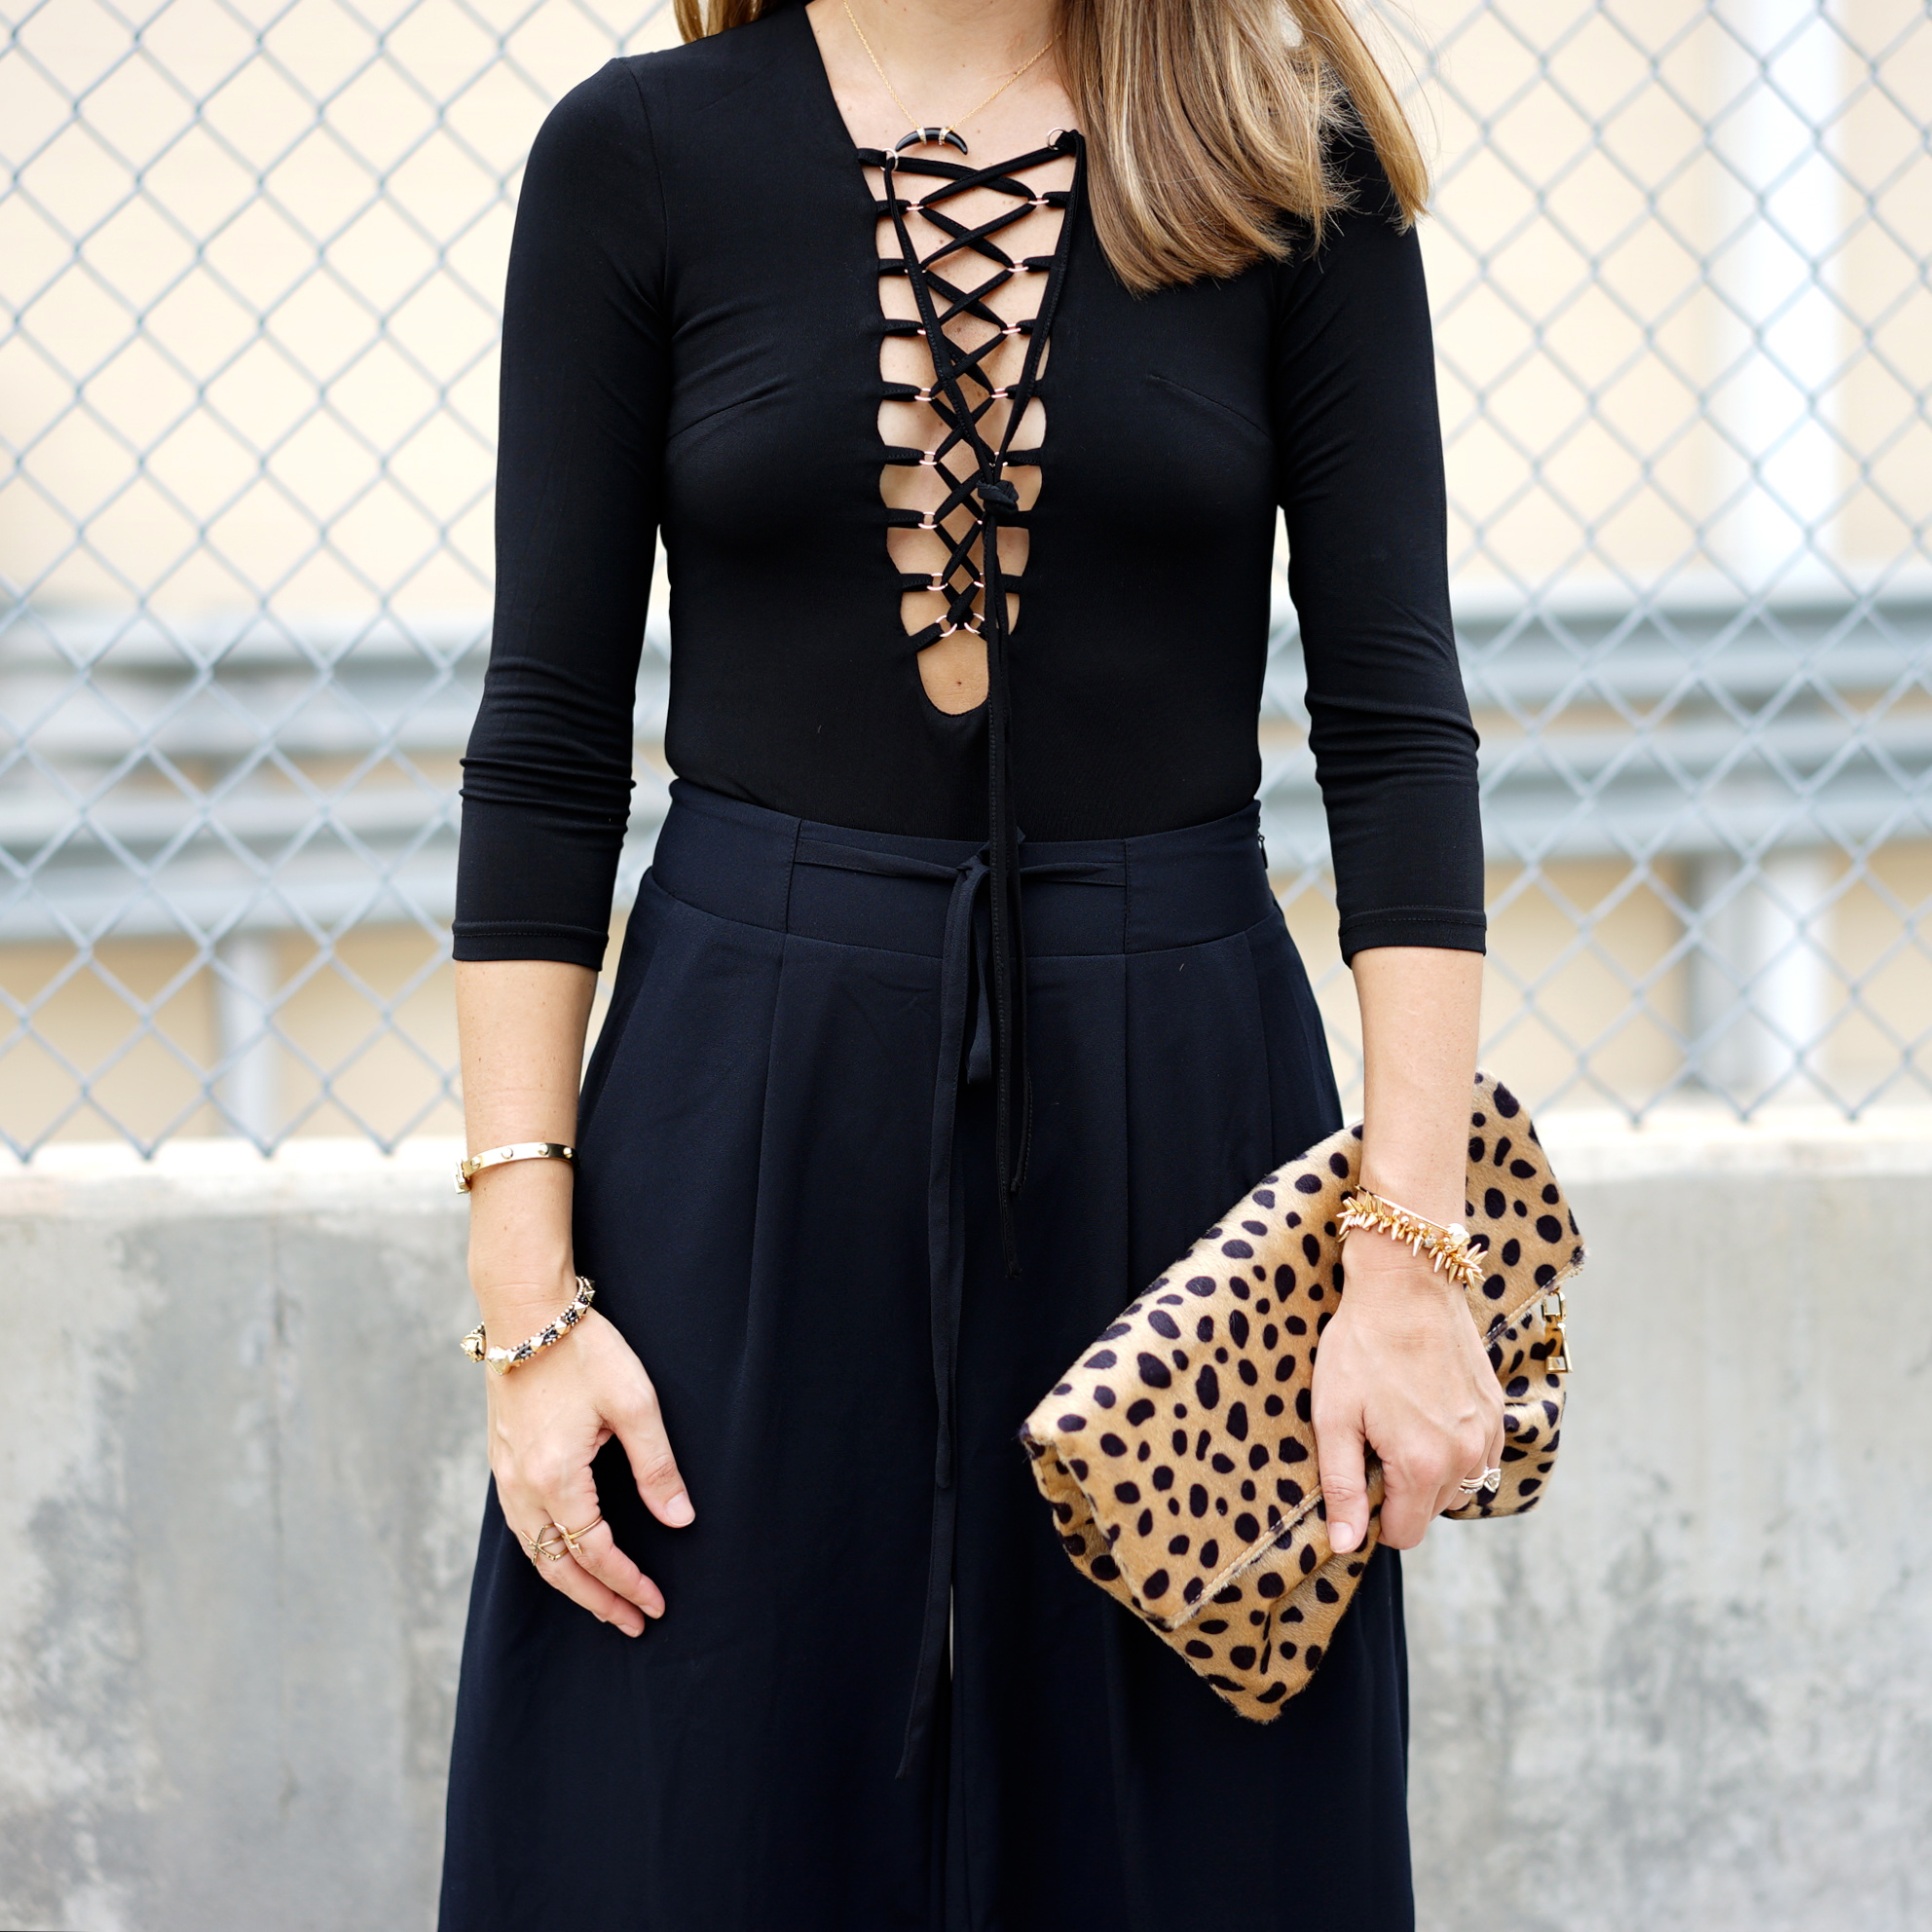 Lace up bodysuit with black culottes